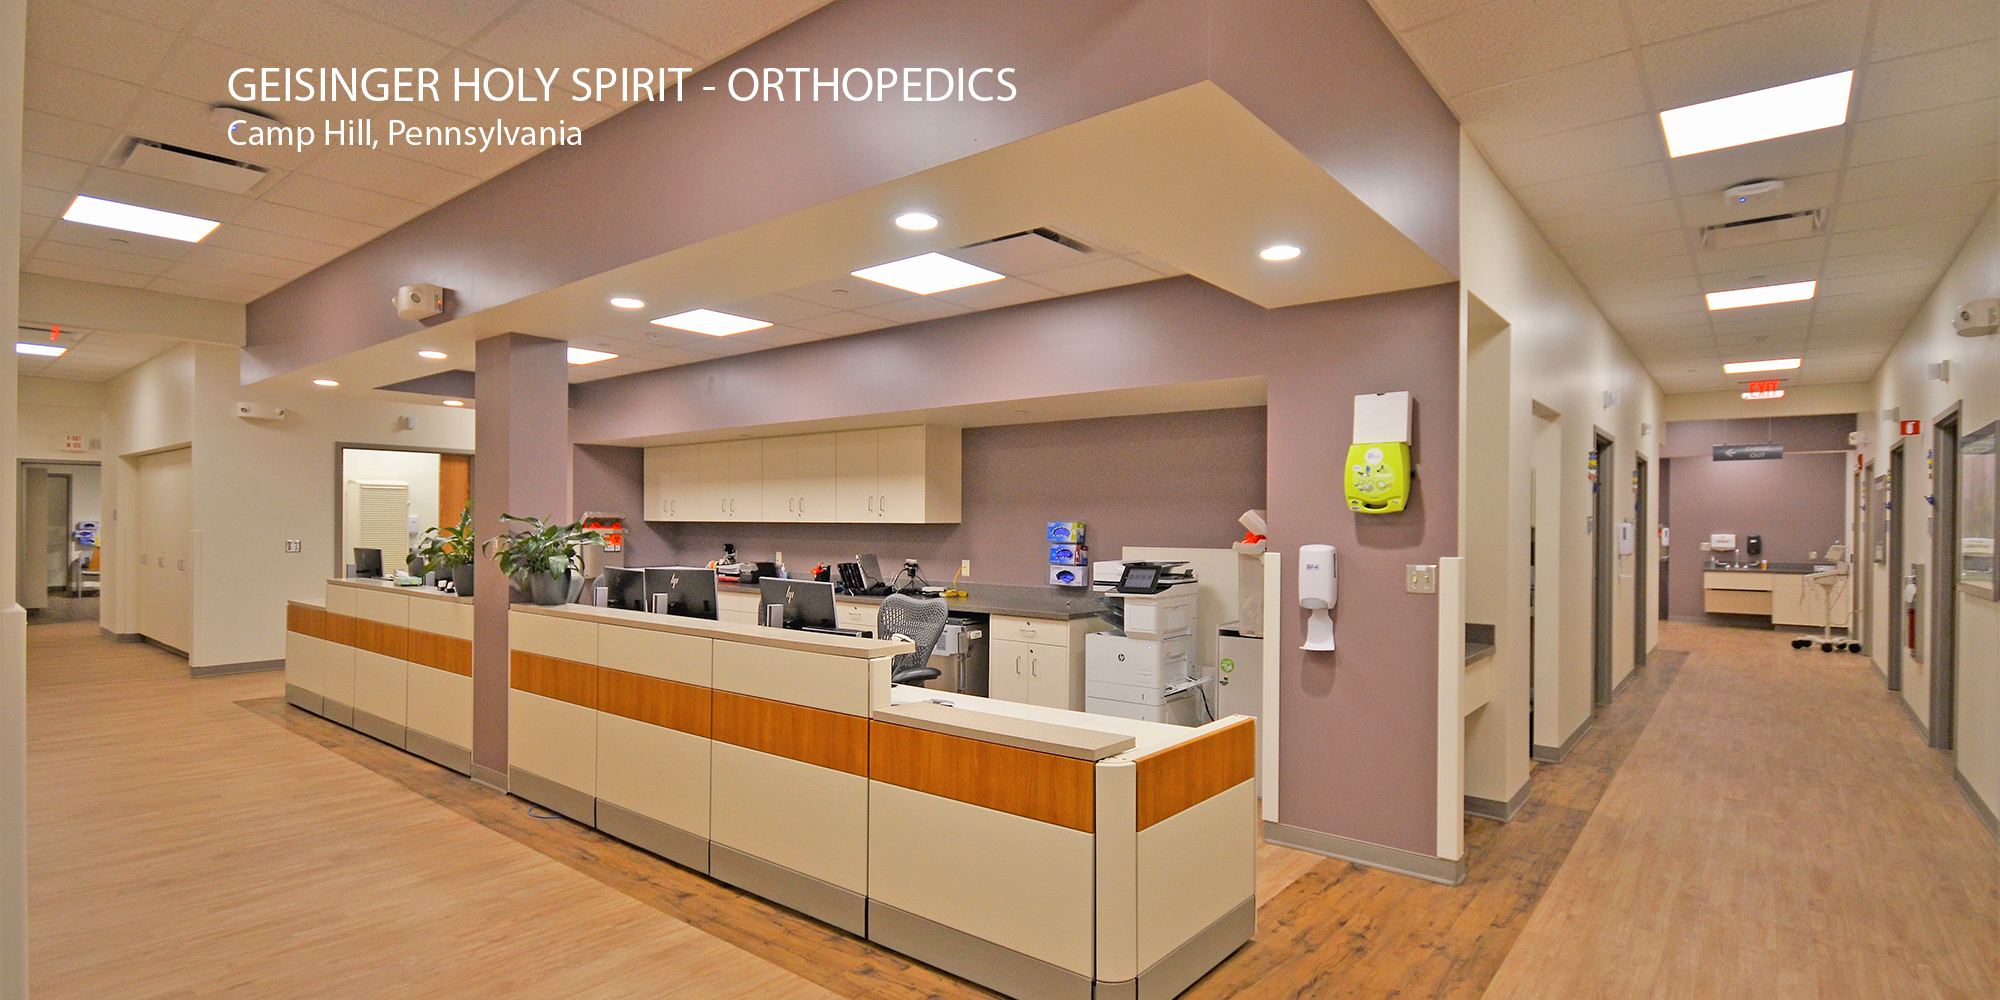 PROJECTS-13-GEISINGER-HOLY-SPIRIT-ORTHO